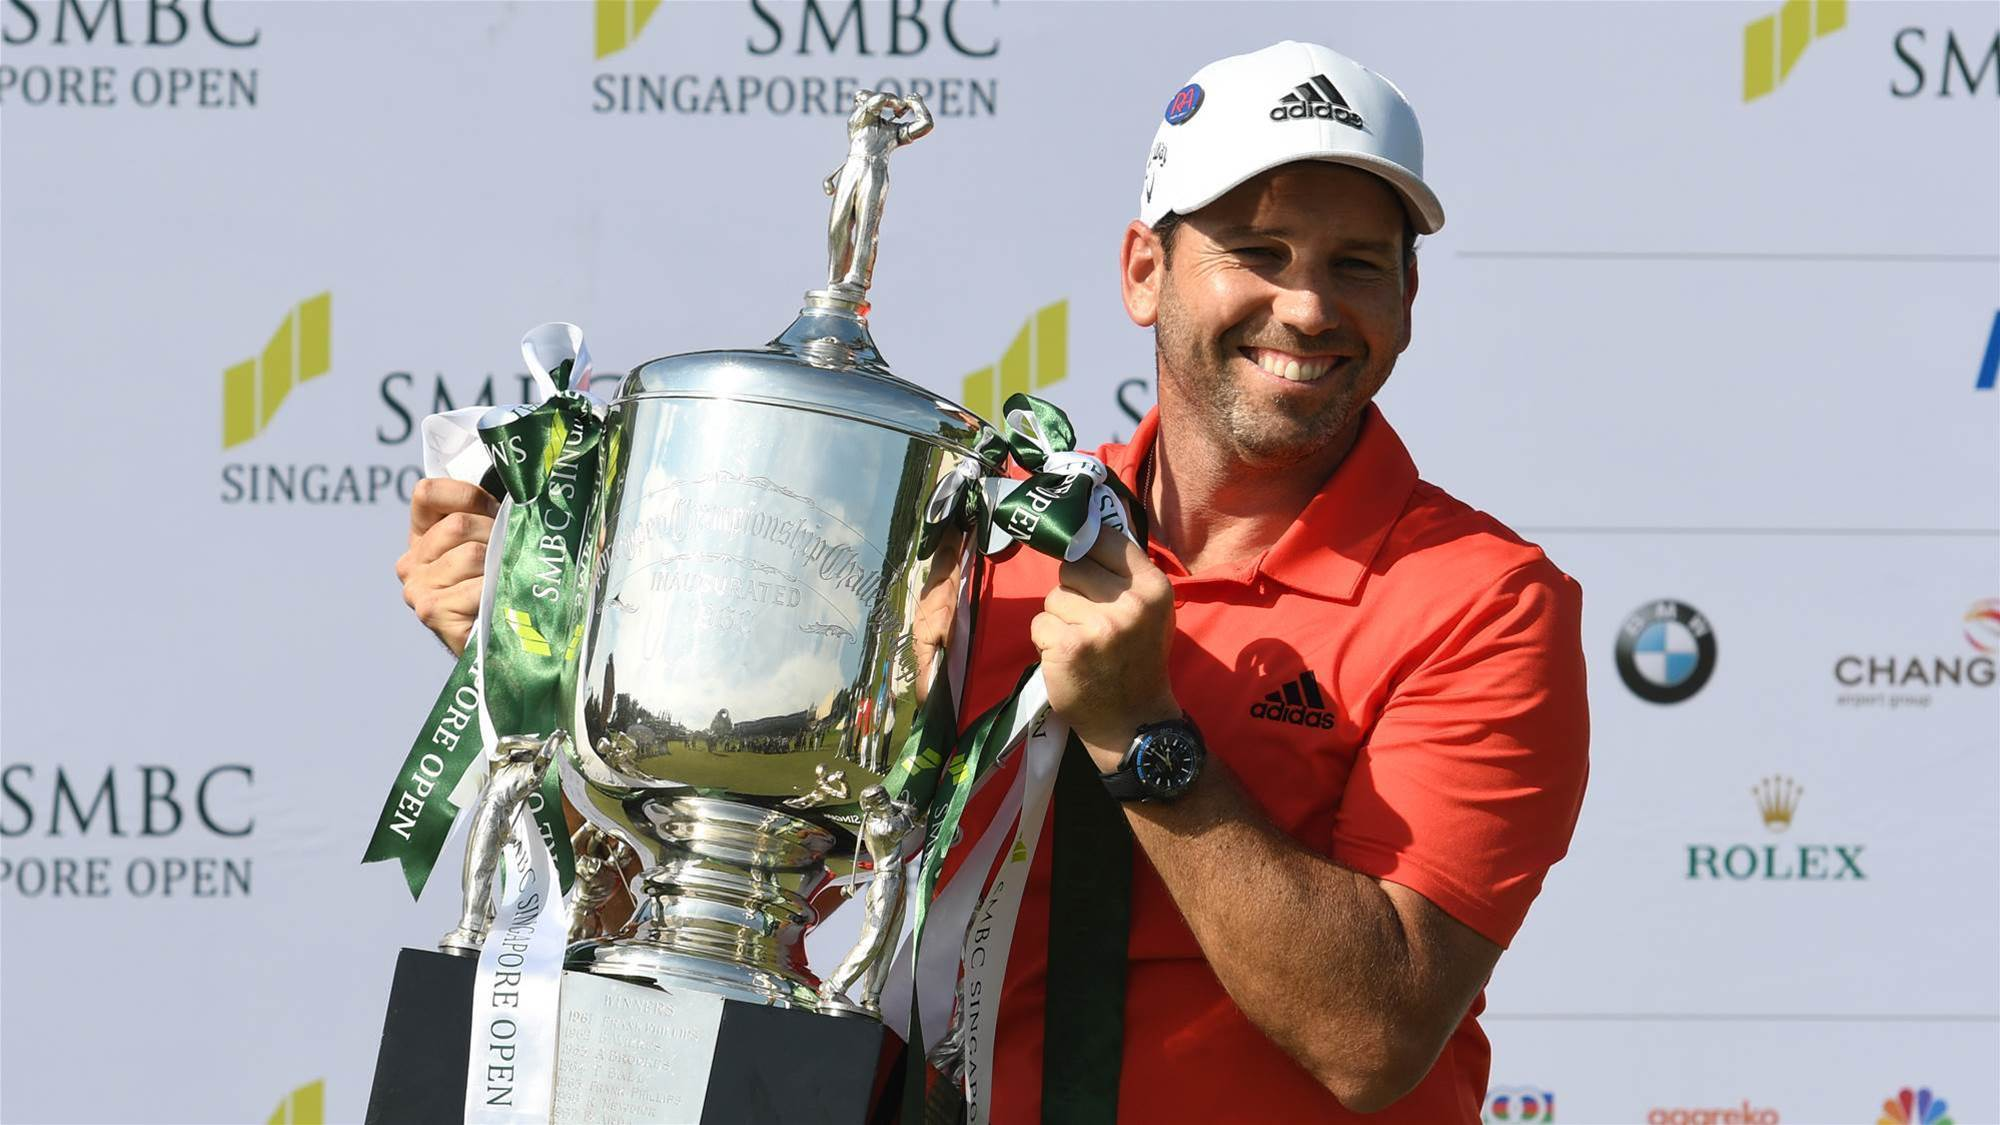 ASIAN TOUR: Singapore Open to start 2019 season